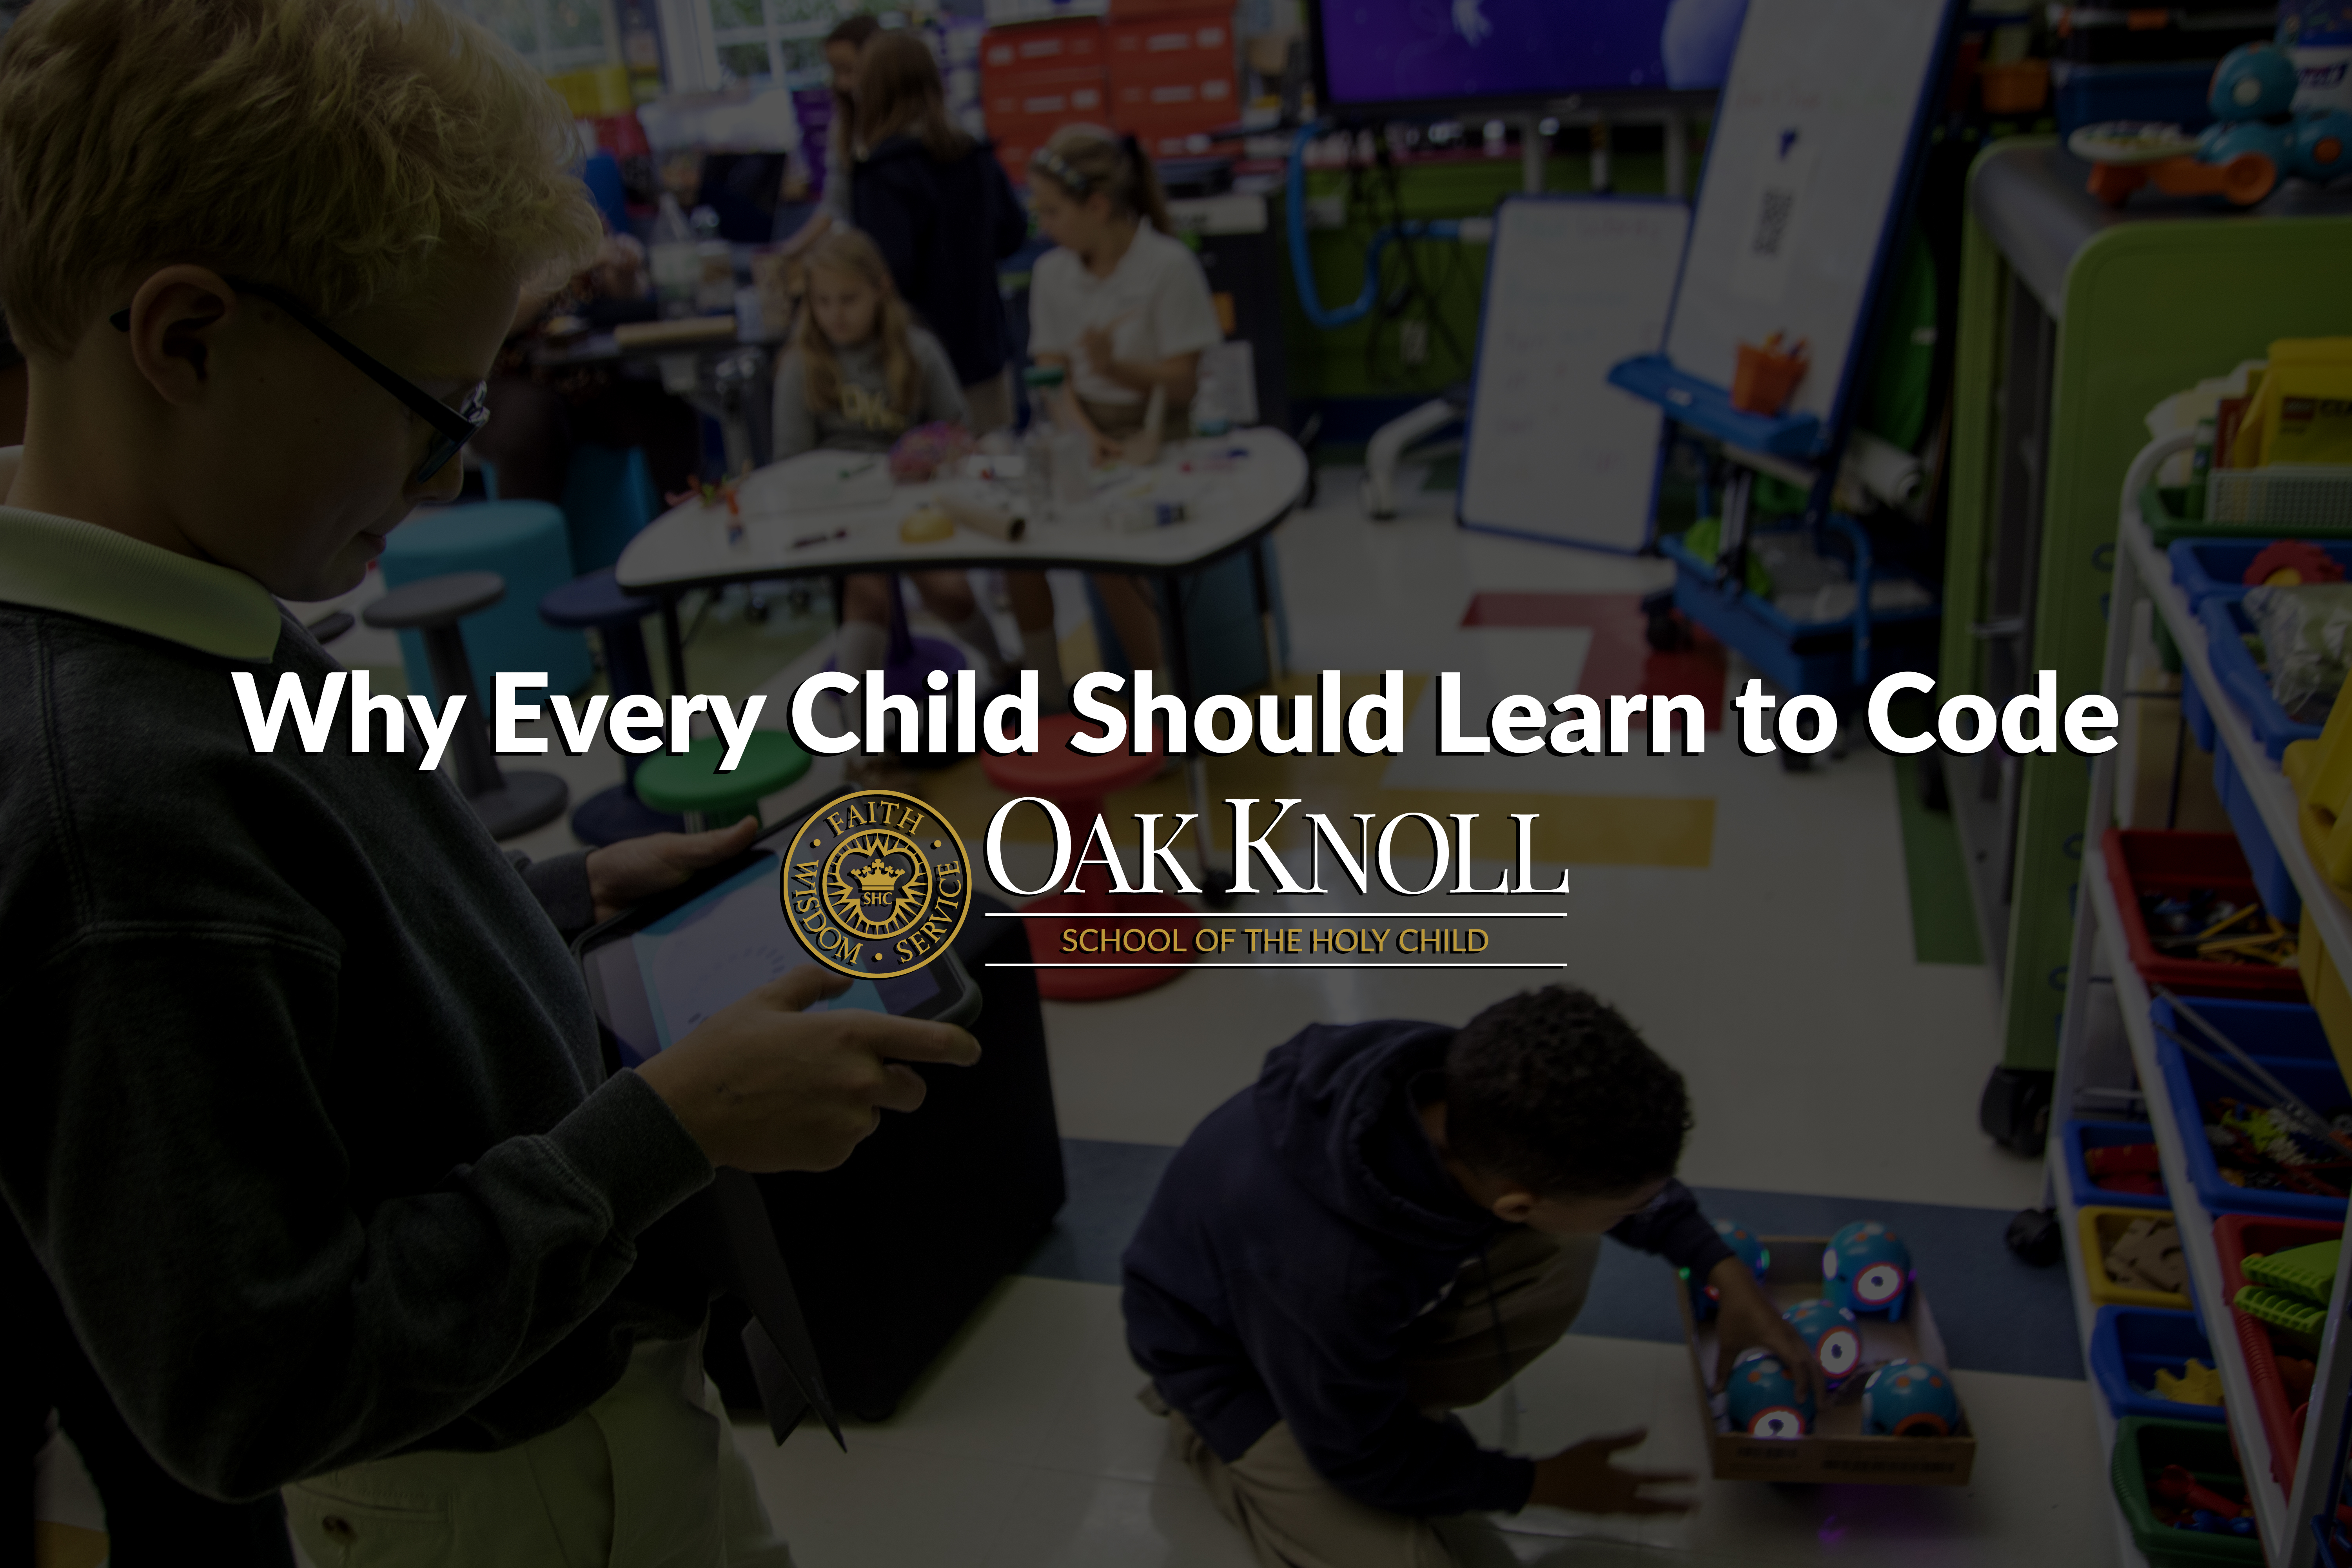 Why Every Child Should Learn to Code